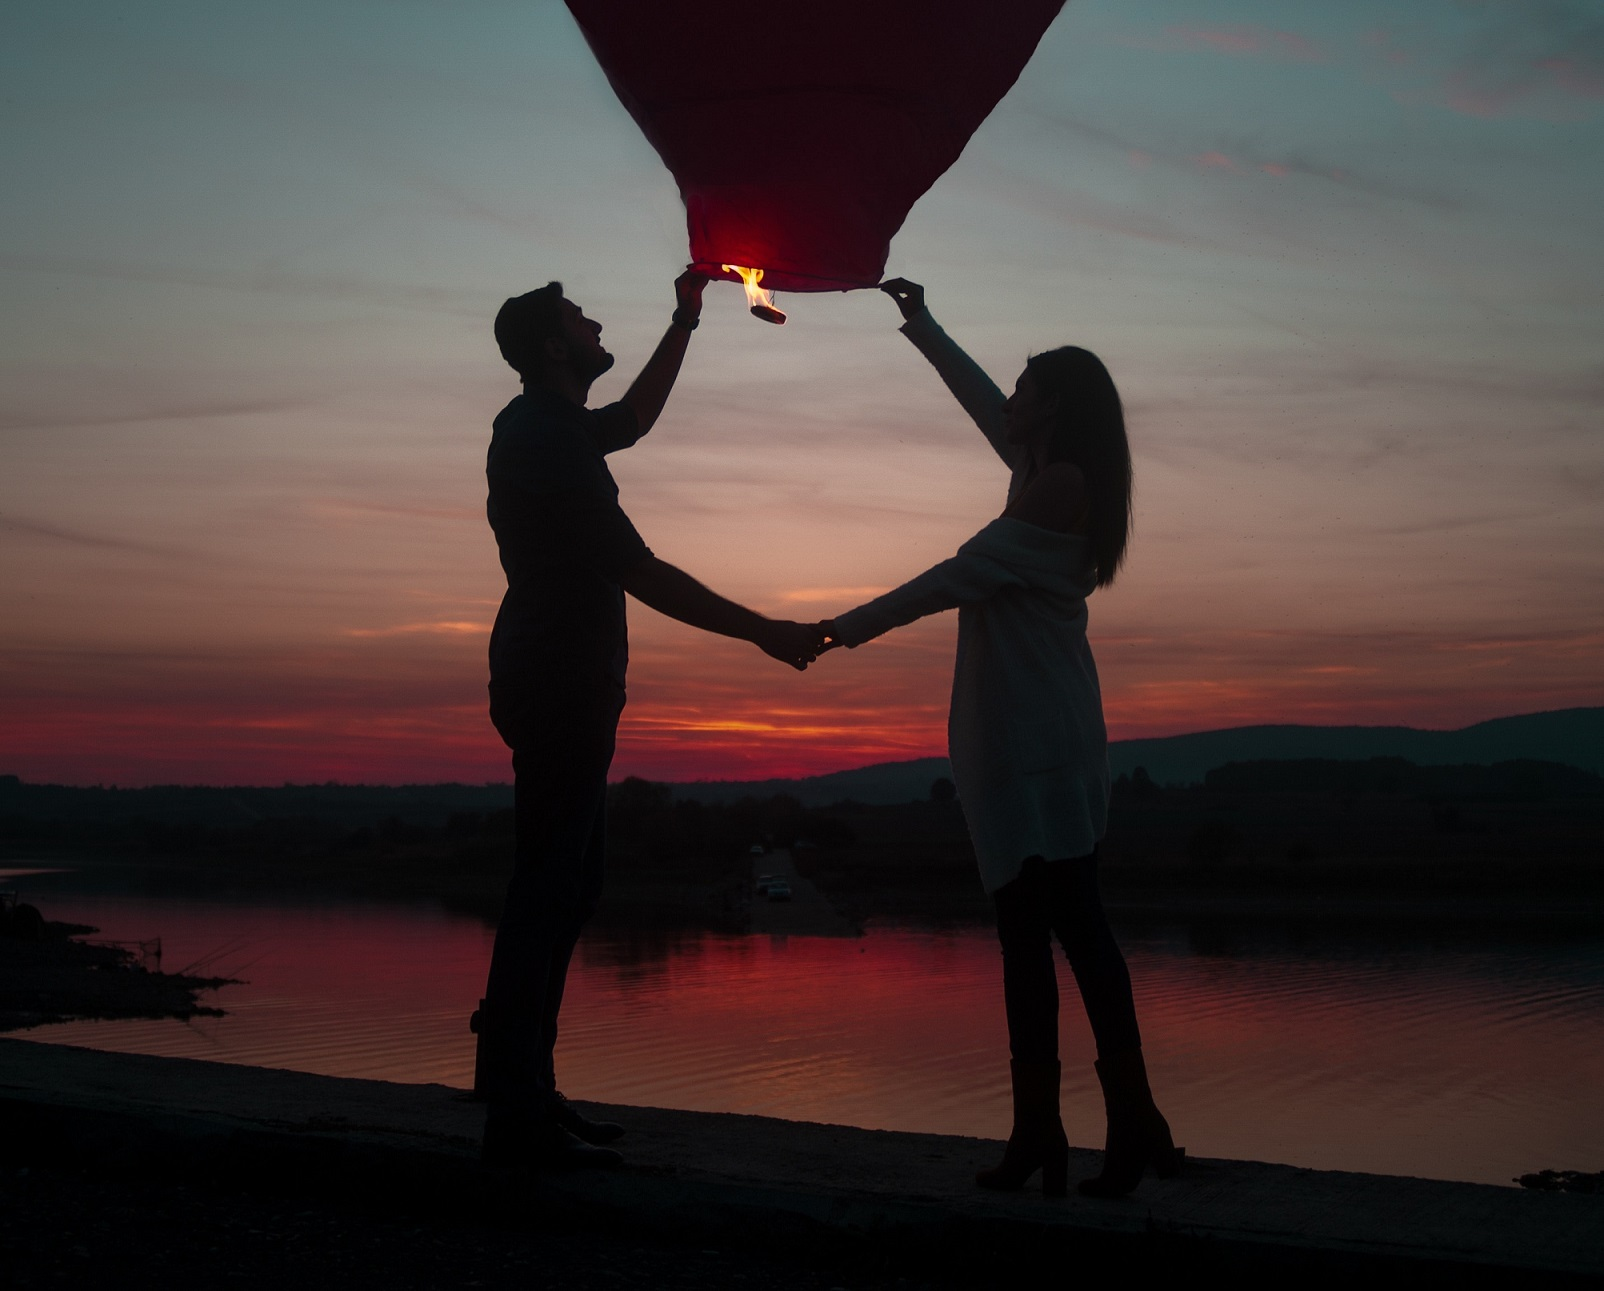 couple holding hot air balloon